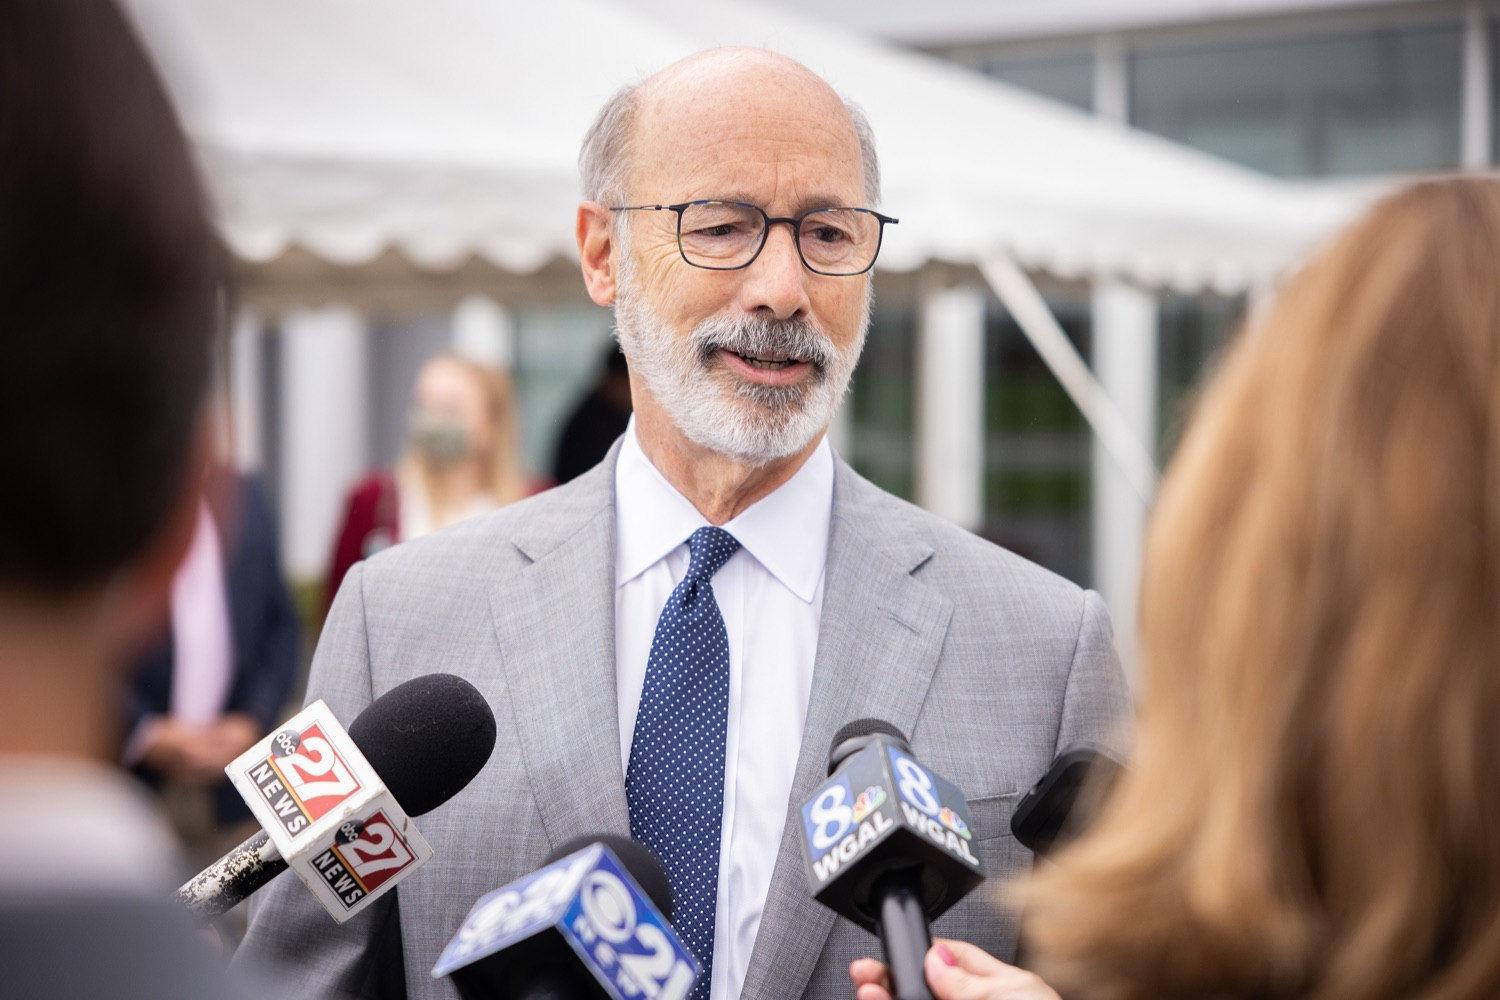 """<a href=""""https://filesource.wostreaming.net/commonwealthofpa/photo/20138_gov_BioTechniqueRibbon_dz_012.JPG"""" target=""""_blank"""">⇣Download Photo<br></a>Pennsylvania Governor Tom Wolf speaking with the press.  Governor Tom Wolf today joined BioTechnique CEO John Clapham, the Department of Community and Economic Developments (DCED) Governors Action Team (GAT), York County Economic Alliance CEO Kevin Schreiber, and local officials at the ribbon cutting ceremony for BioTechniques new pharmaceutical manufacturing facility in York County.   OCTOBER 12, 2021 - YORK, PA"""